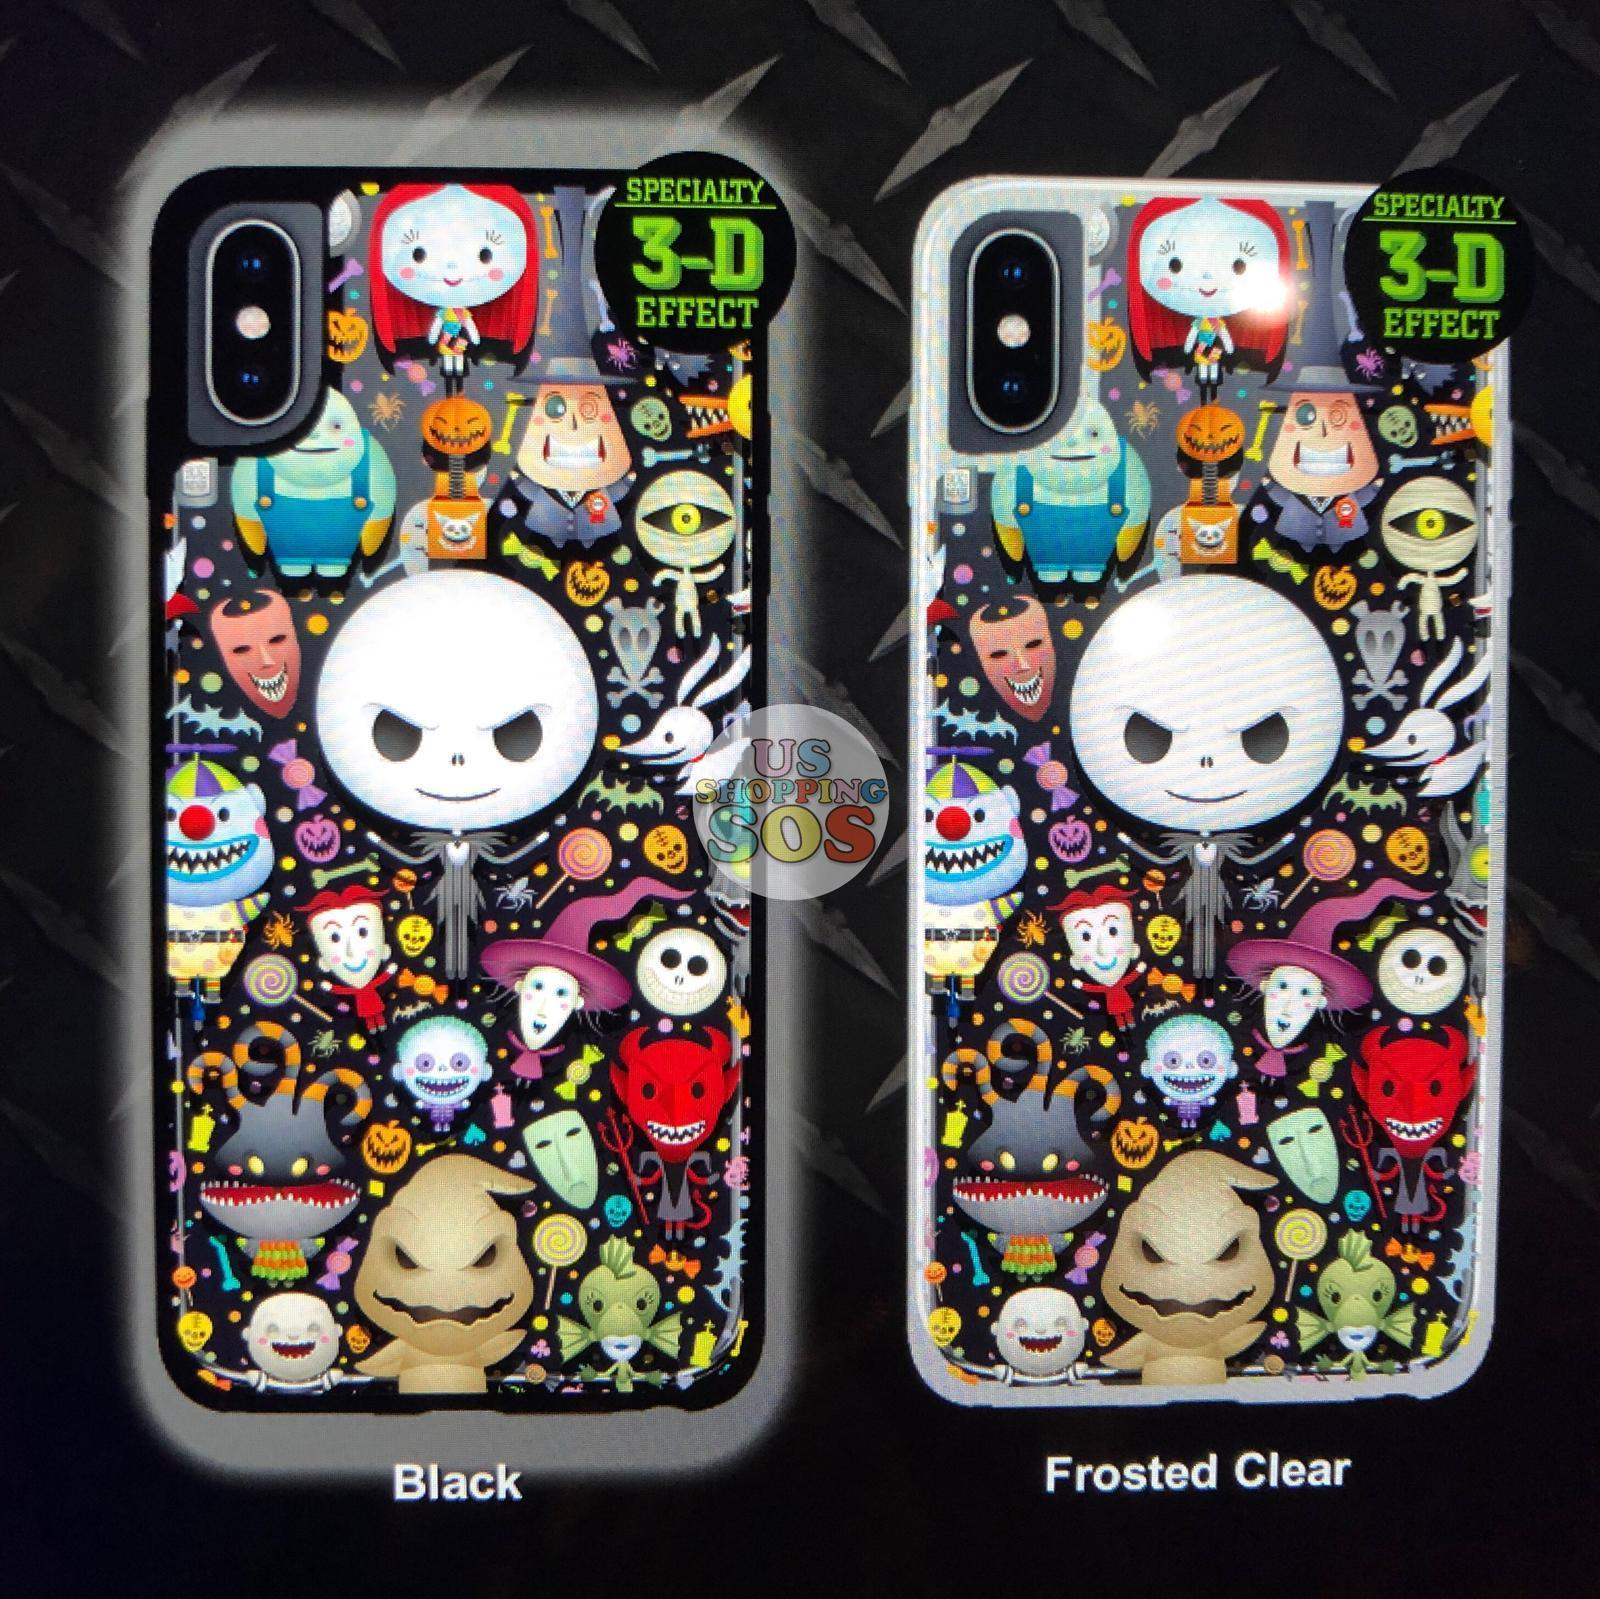 DLR - Custom Made Phone Case - Nightmare of Cute by JMaruyama (3-D Effect)